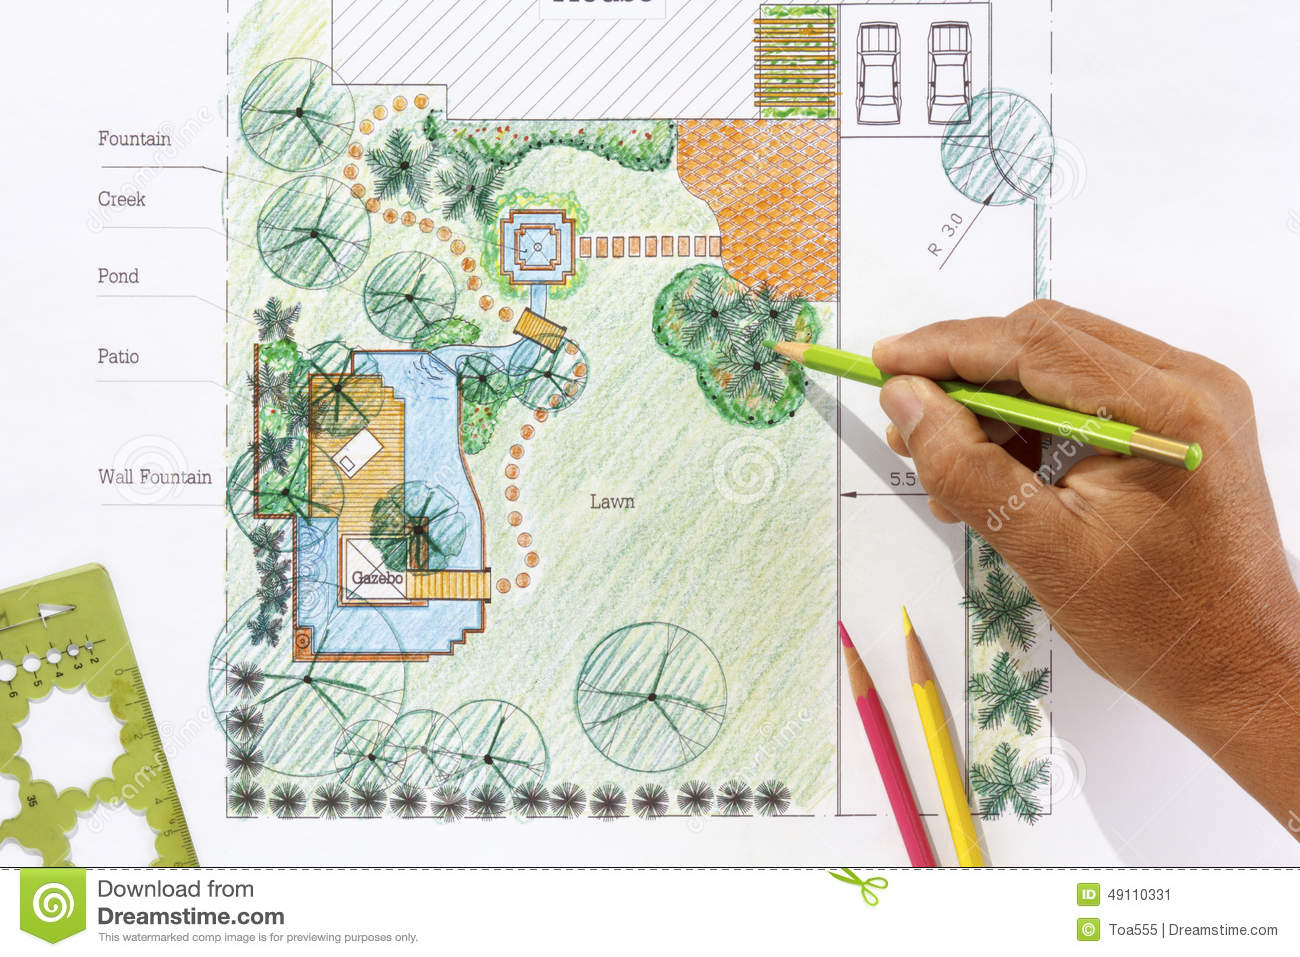 Landscape architect design water garden plans stock photo for Garden landscape plan